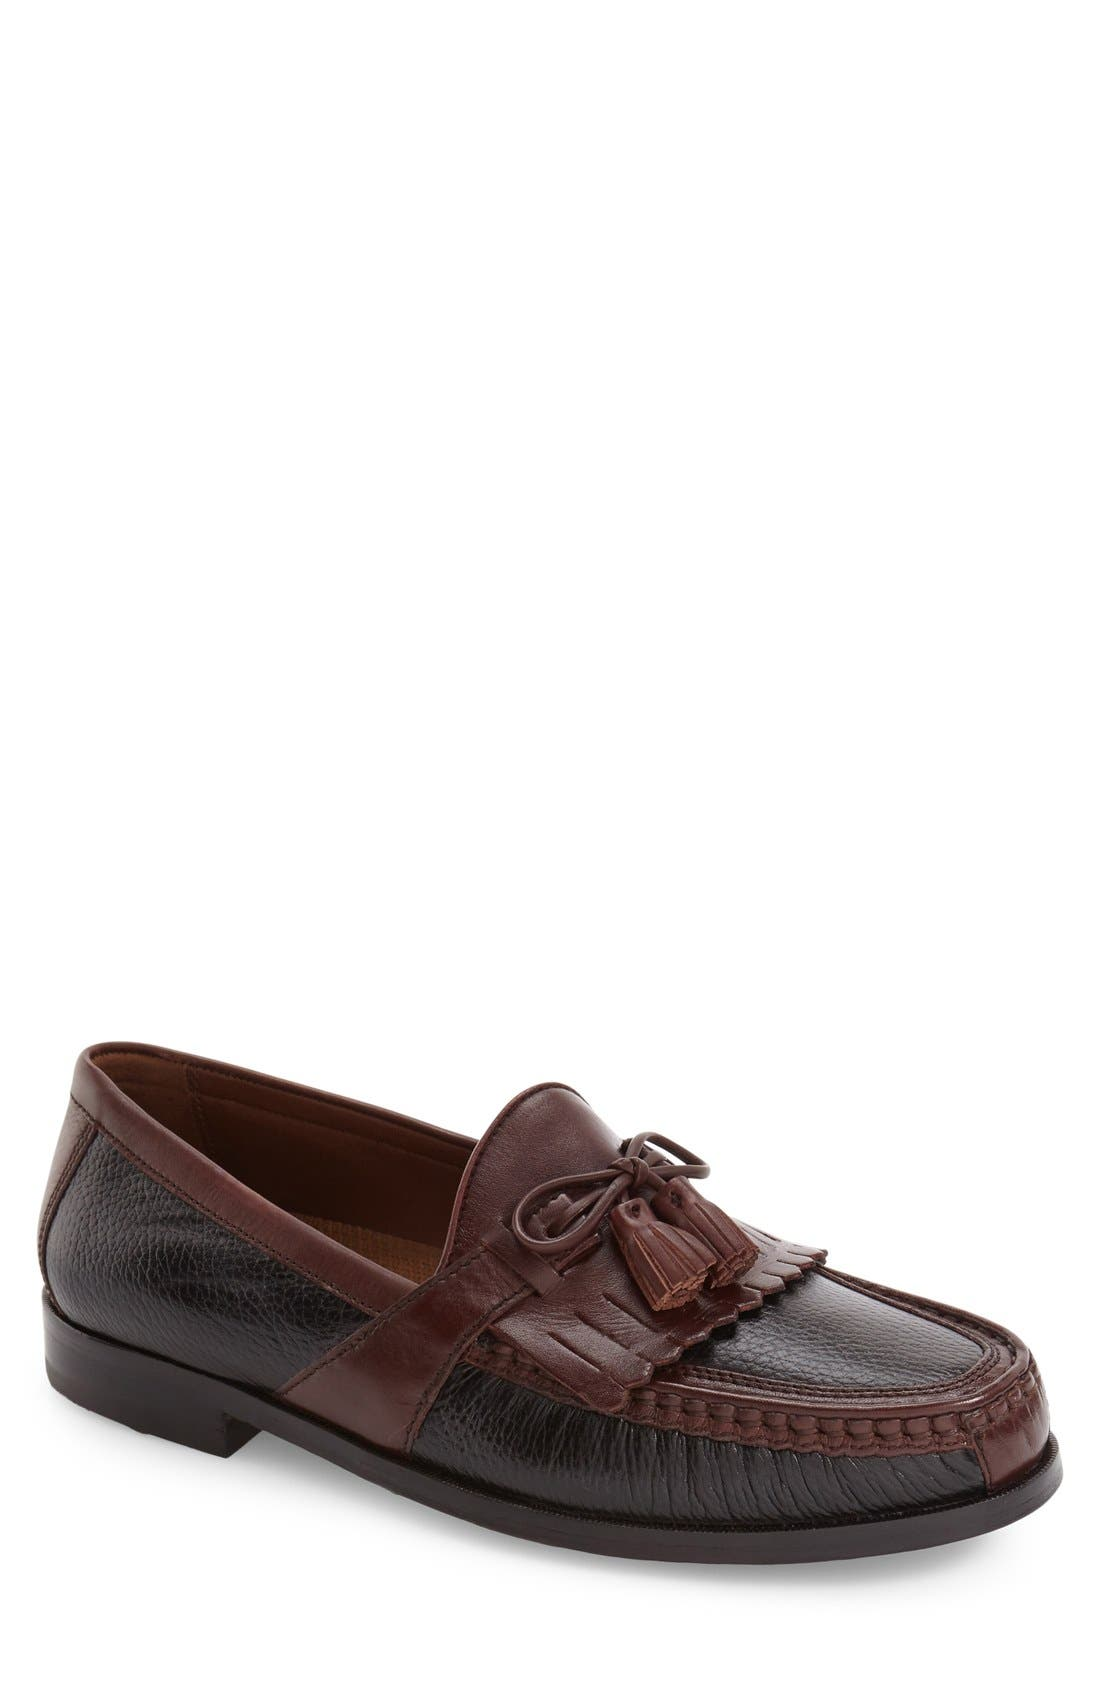 JOHNSTON & MURPHY, 'Aragon II' Loafer, Alternate thumbnail 3, color, BLACK/ BROWN LEATHER